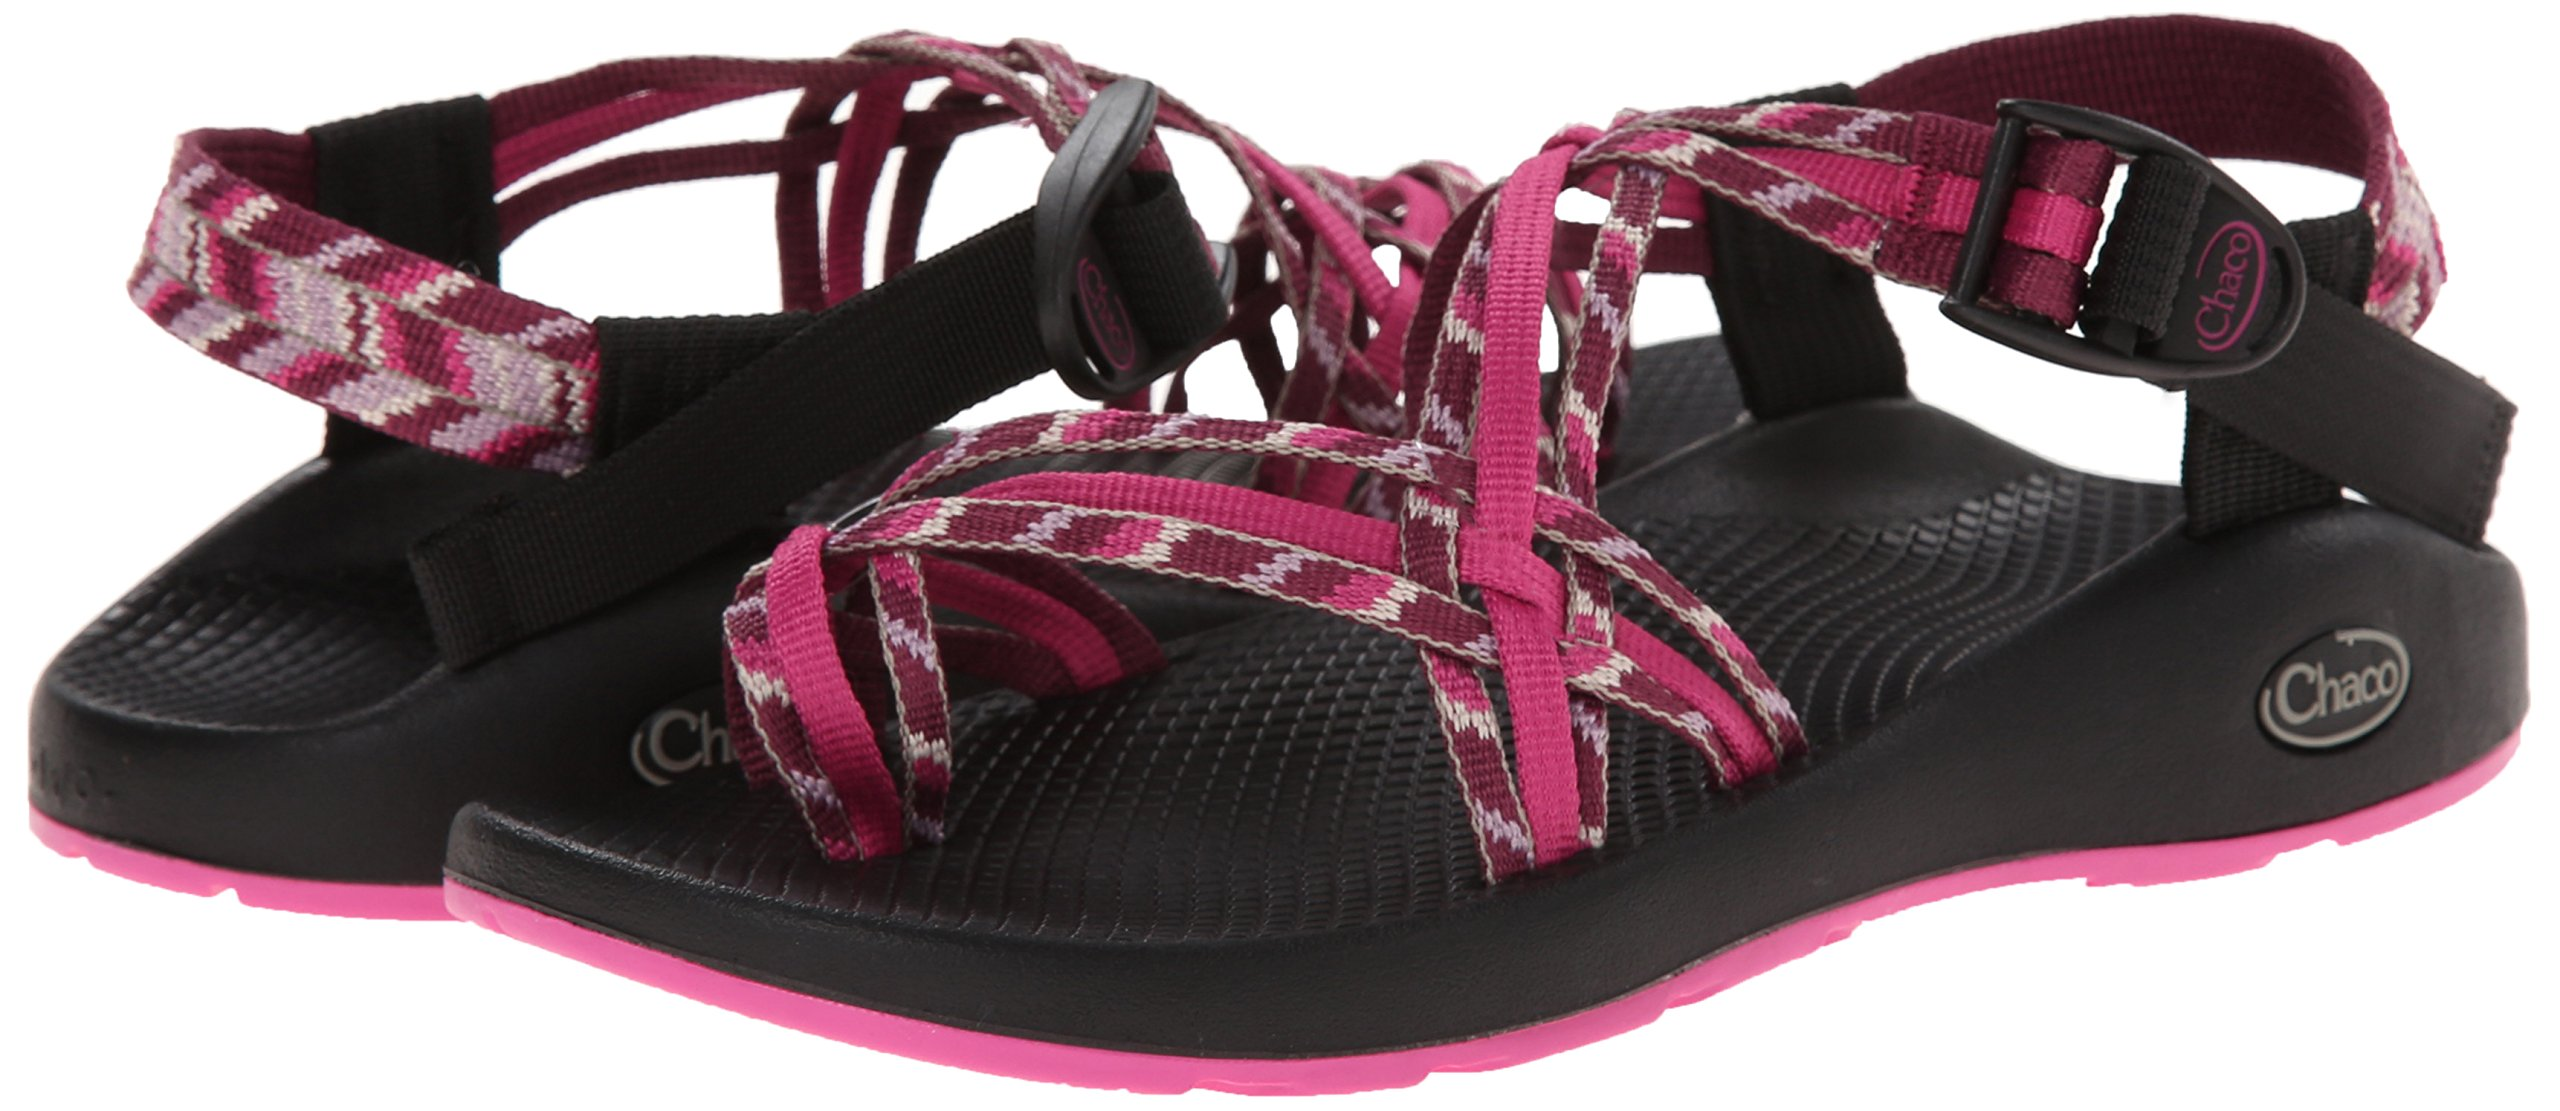 Chaco Women's ZX3 Yampa W Sandal, Clashing, 5 M US by Chaco (Image #6)